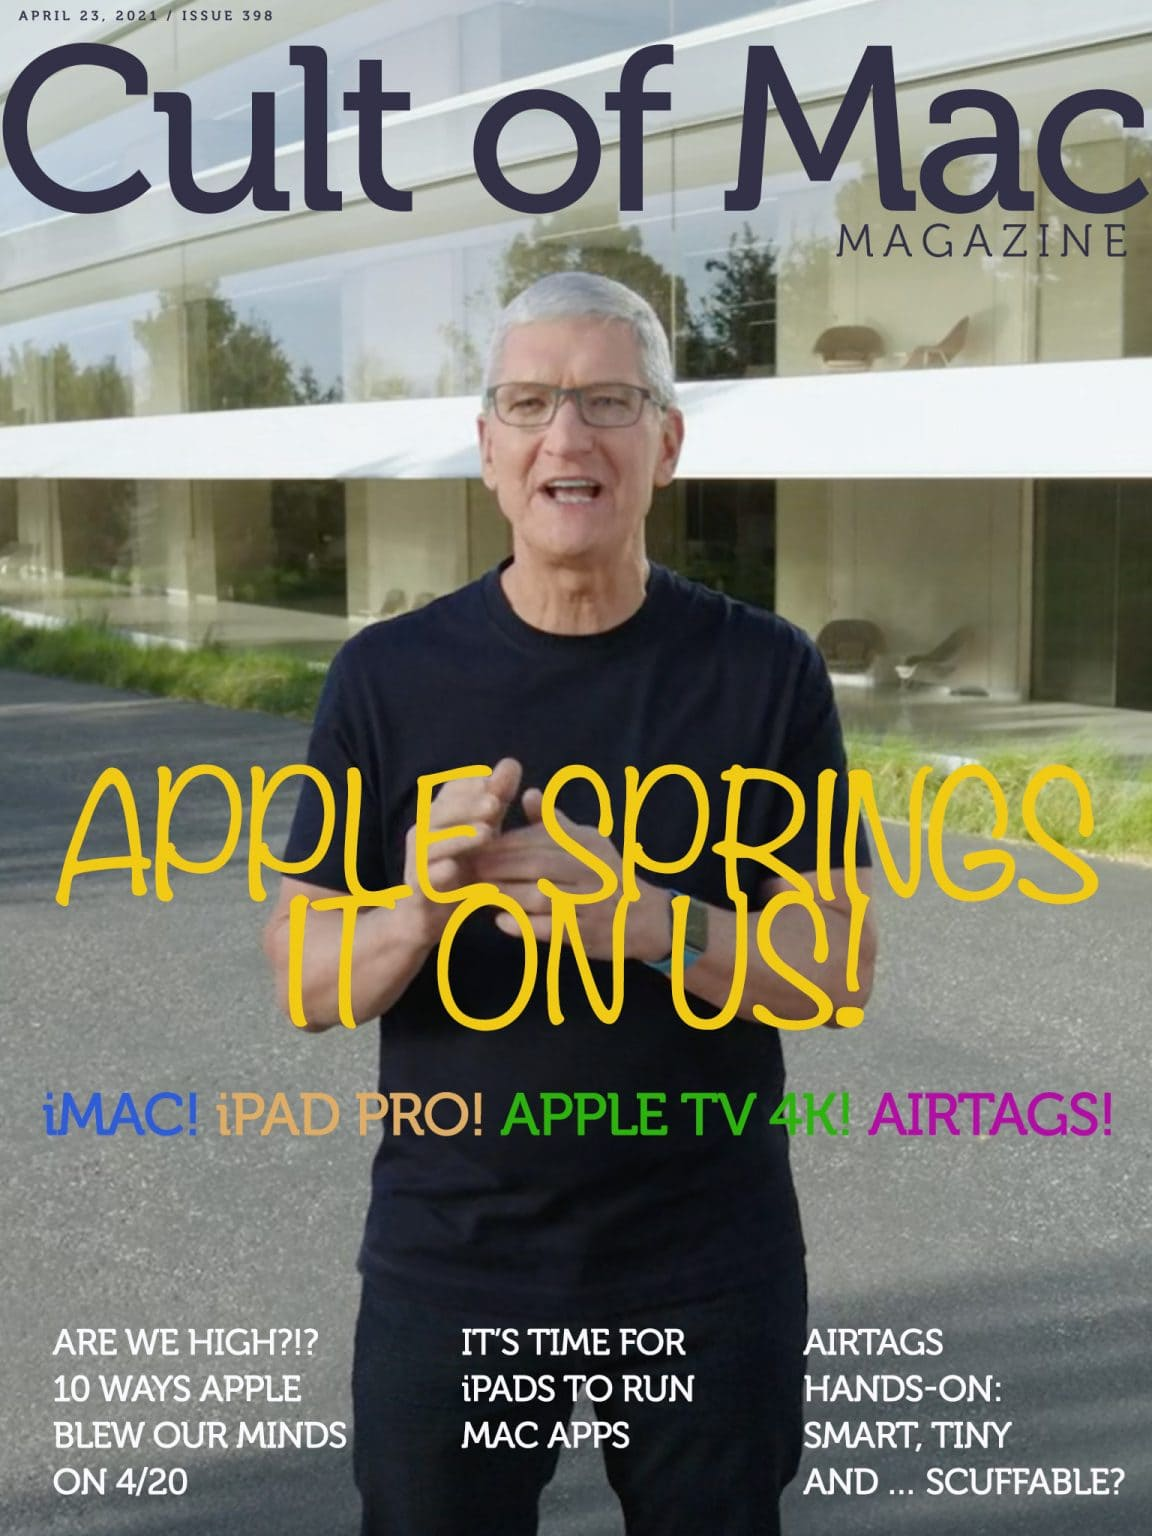 Apple Spring Loaded event: Full coverage in Cult of Mac Magazine.